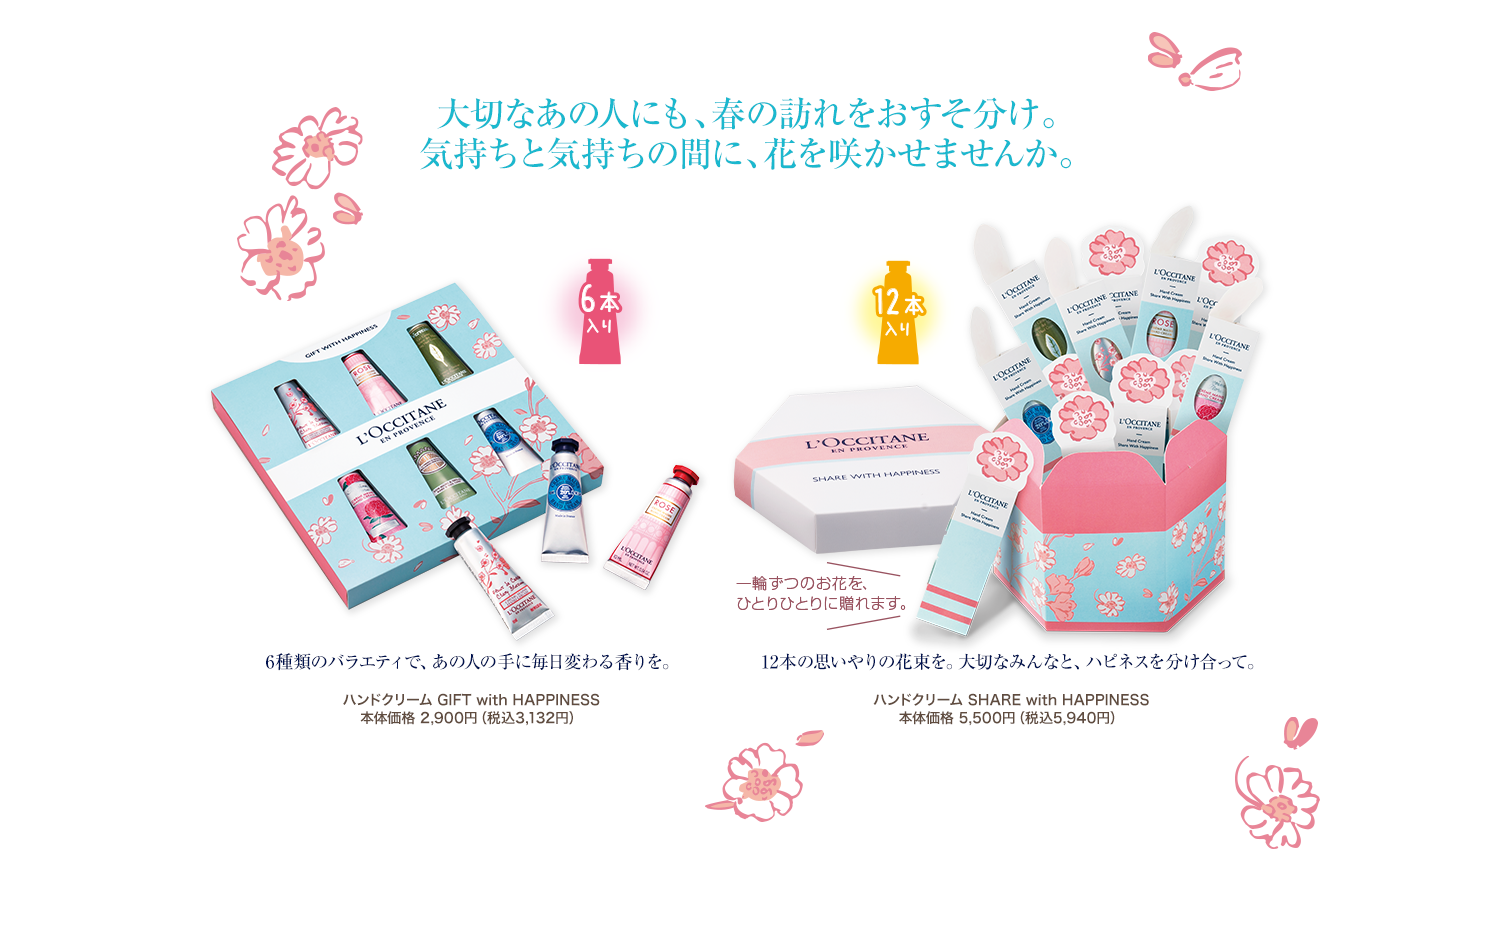 ハンドクリーム GIFT with HAPPINESS ハンドクリーム SHARE with HAPPINESS